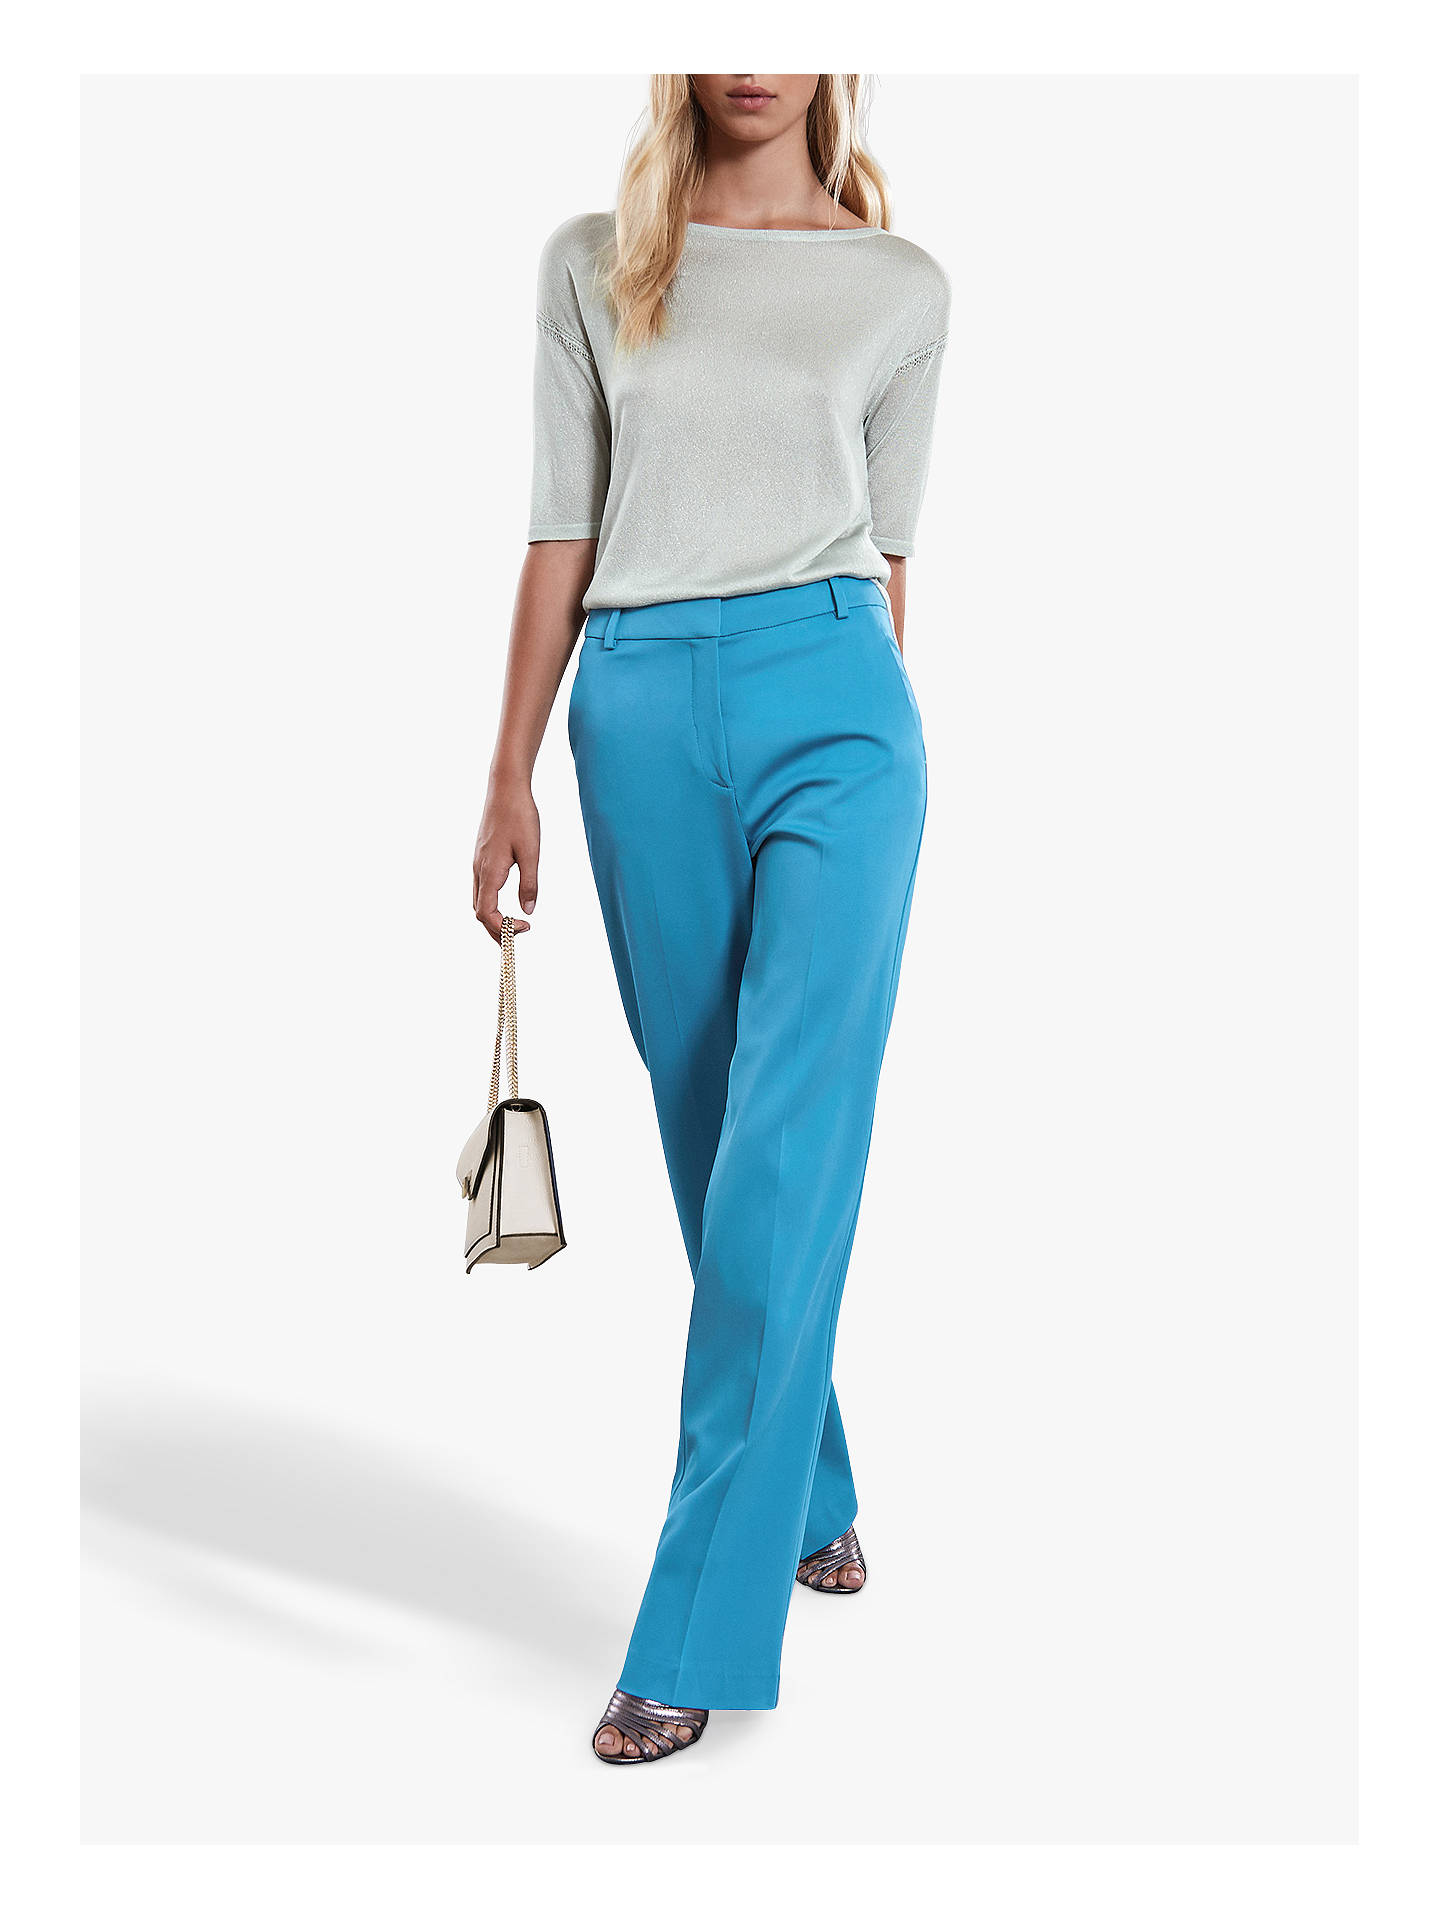 BuyReiss Lilea Metallic Top, Mint, XS Online at johnlewis.com